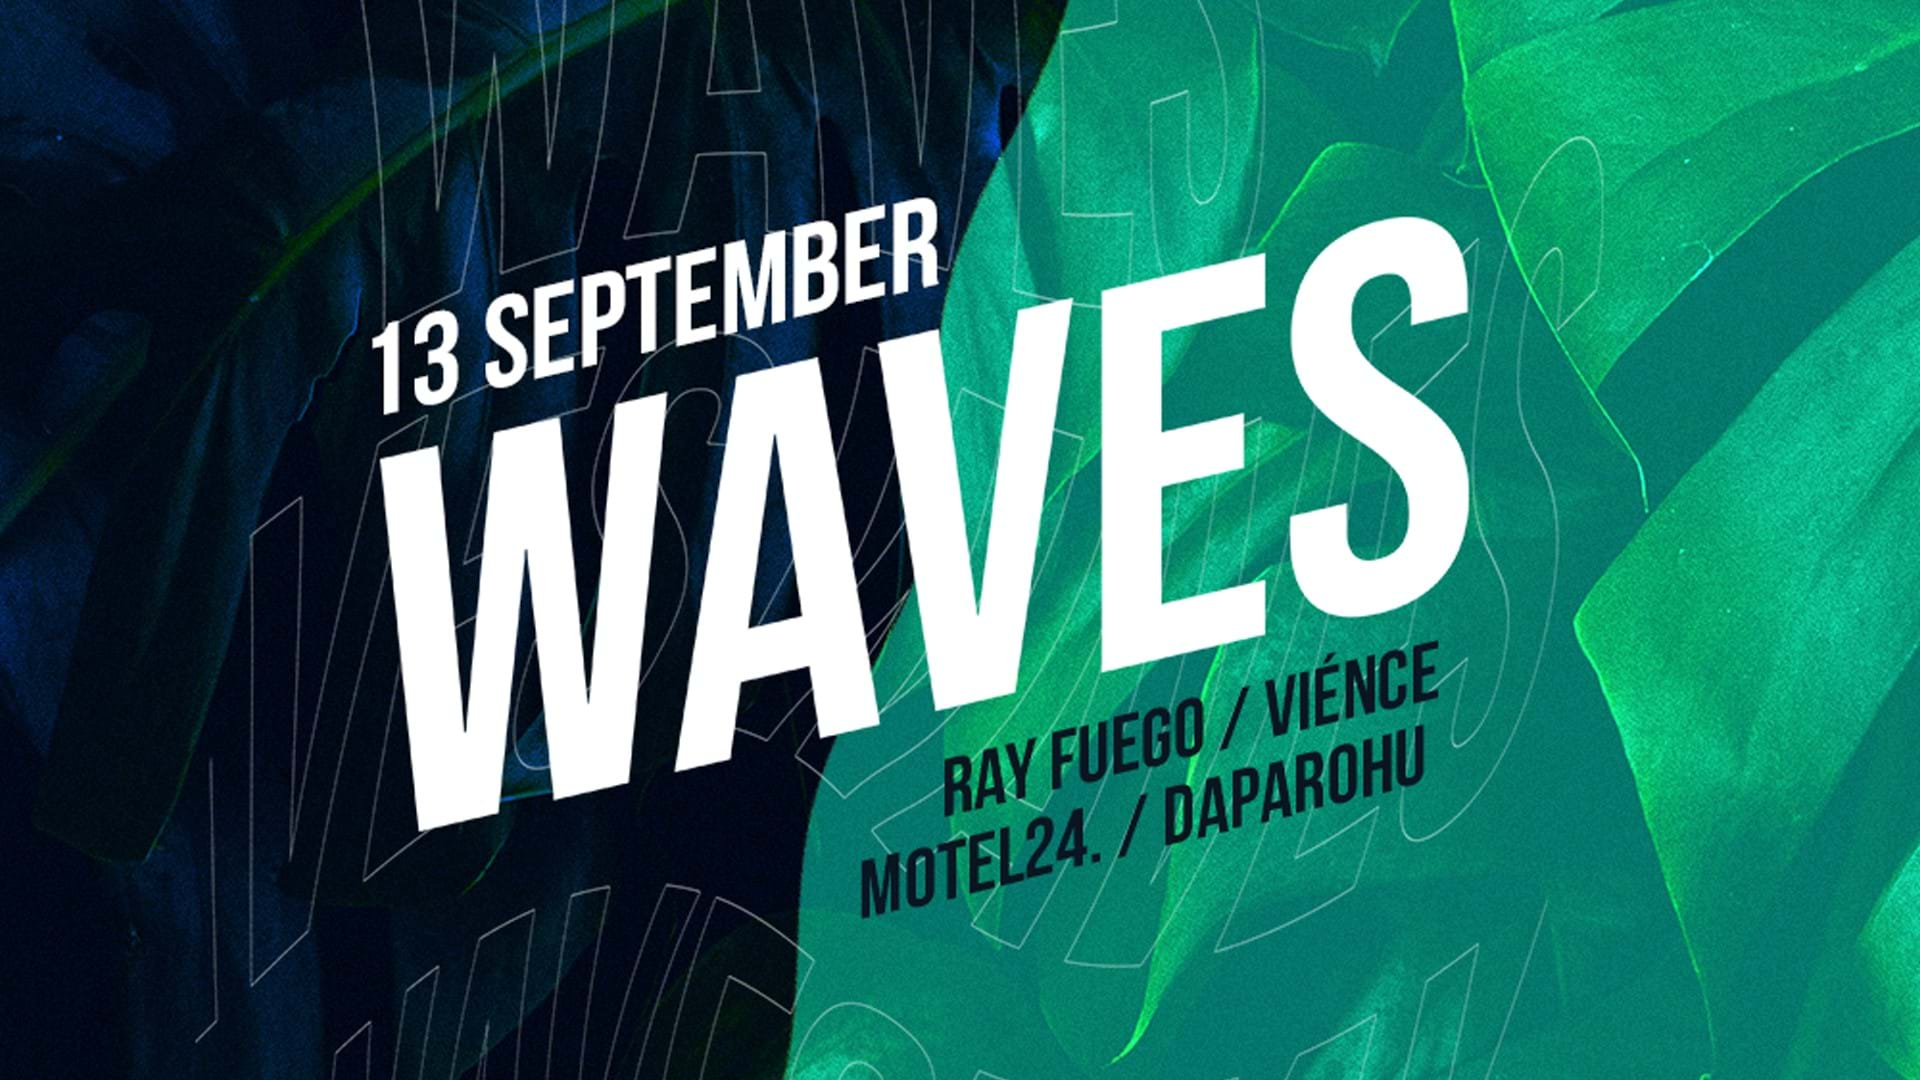 WAVES: Ray Fuego